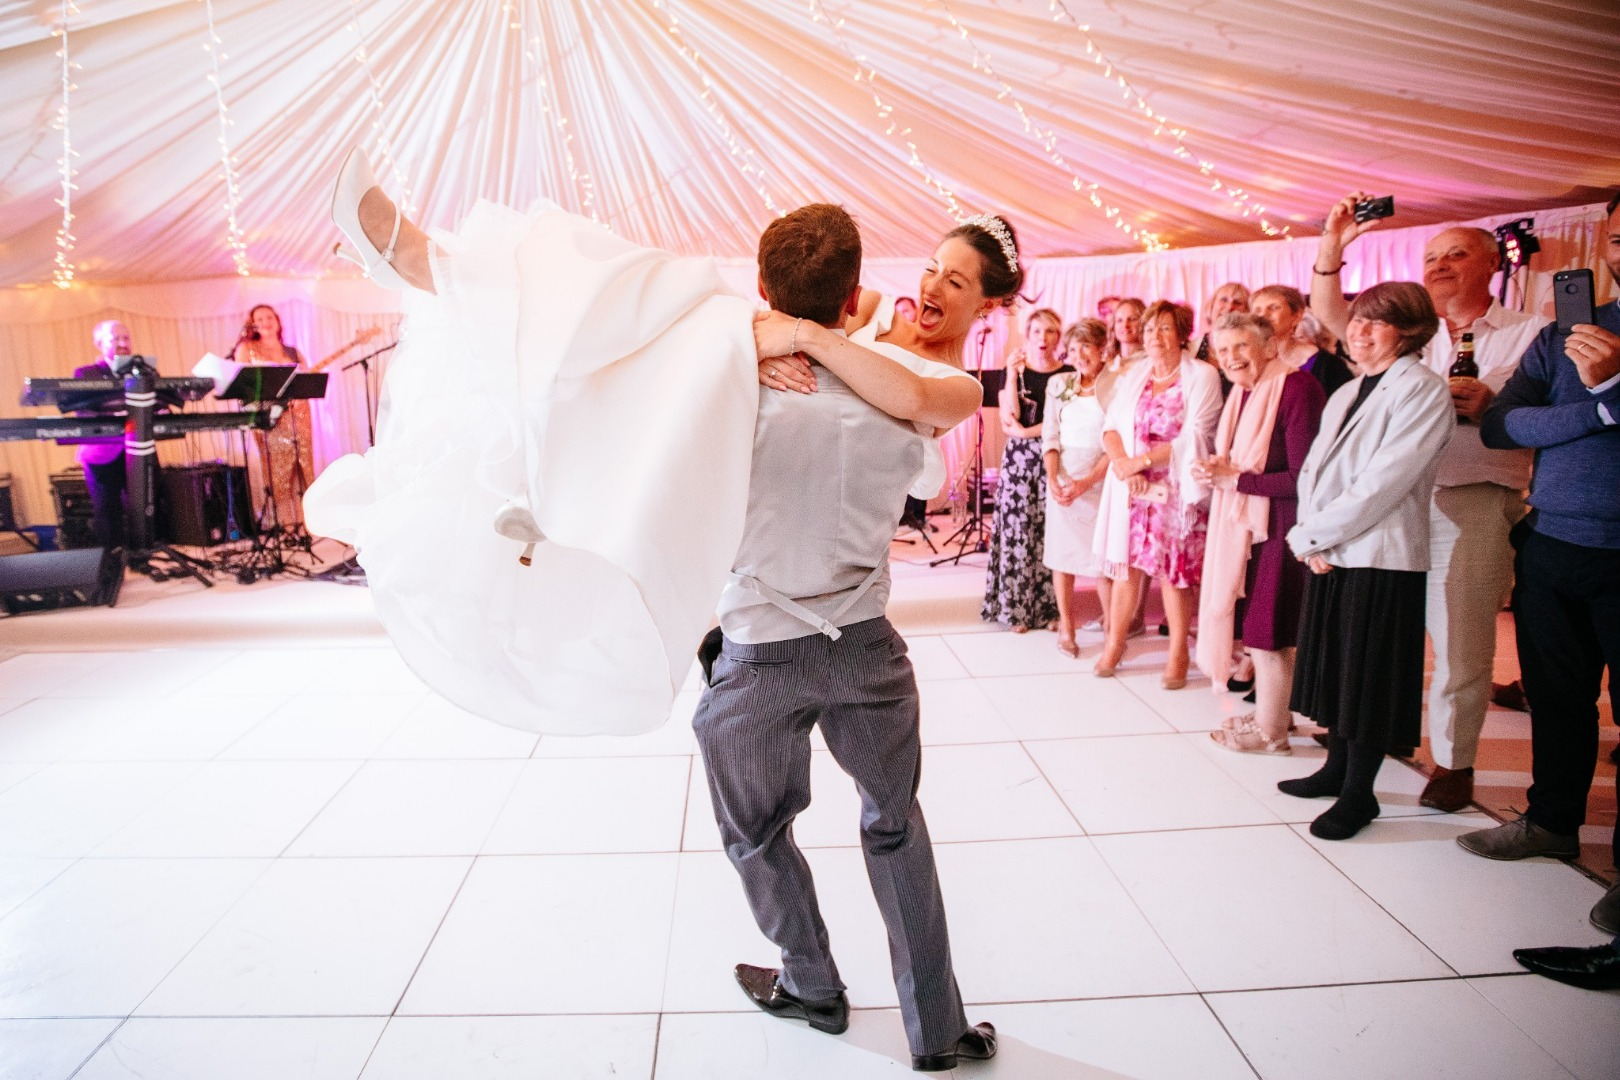 Bride and groom dancing first dance to live band. Photo by Sarah Legge.